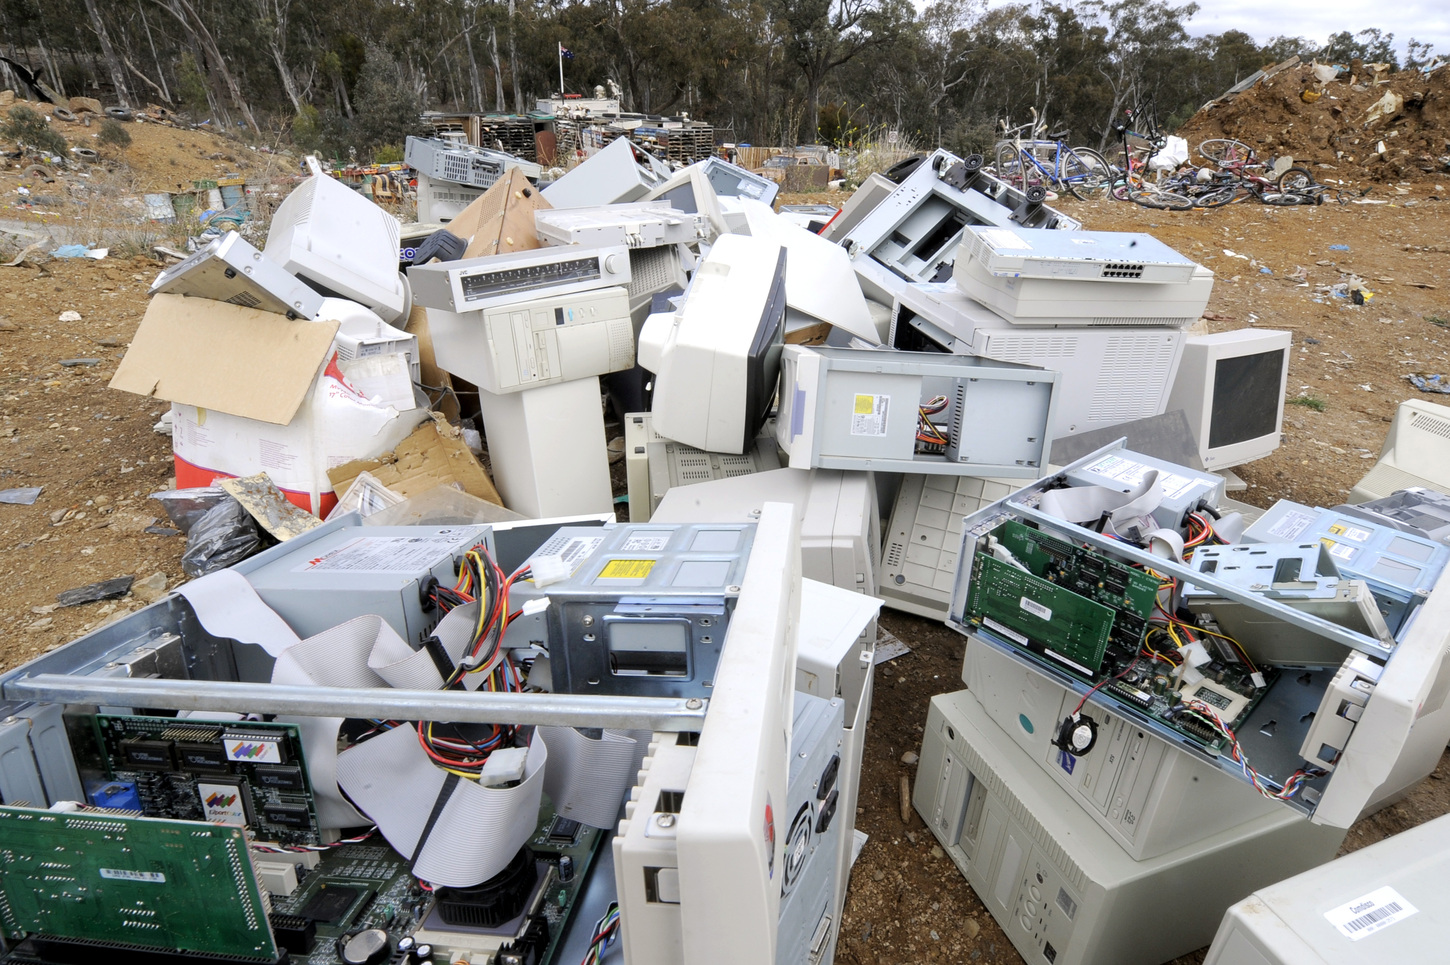 Obsolete computers and accessories shouldn't end up in landfill when they can be recycled for metals and materials. Image: AAP Image/Alan Porritt